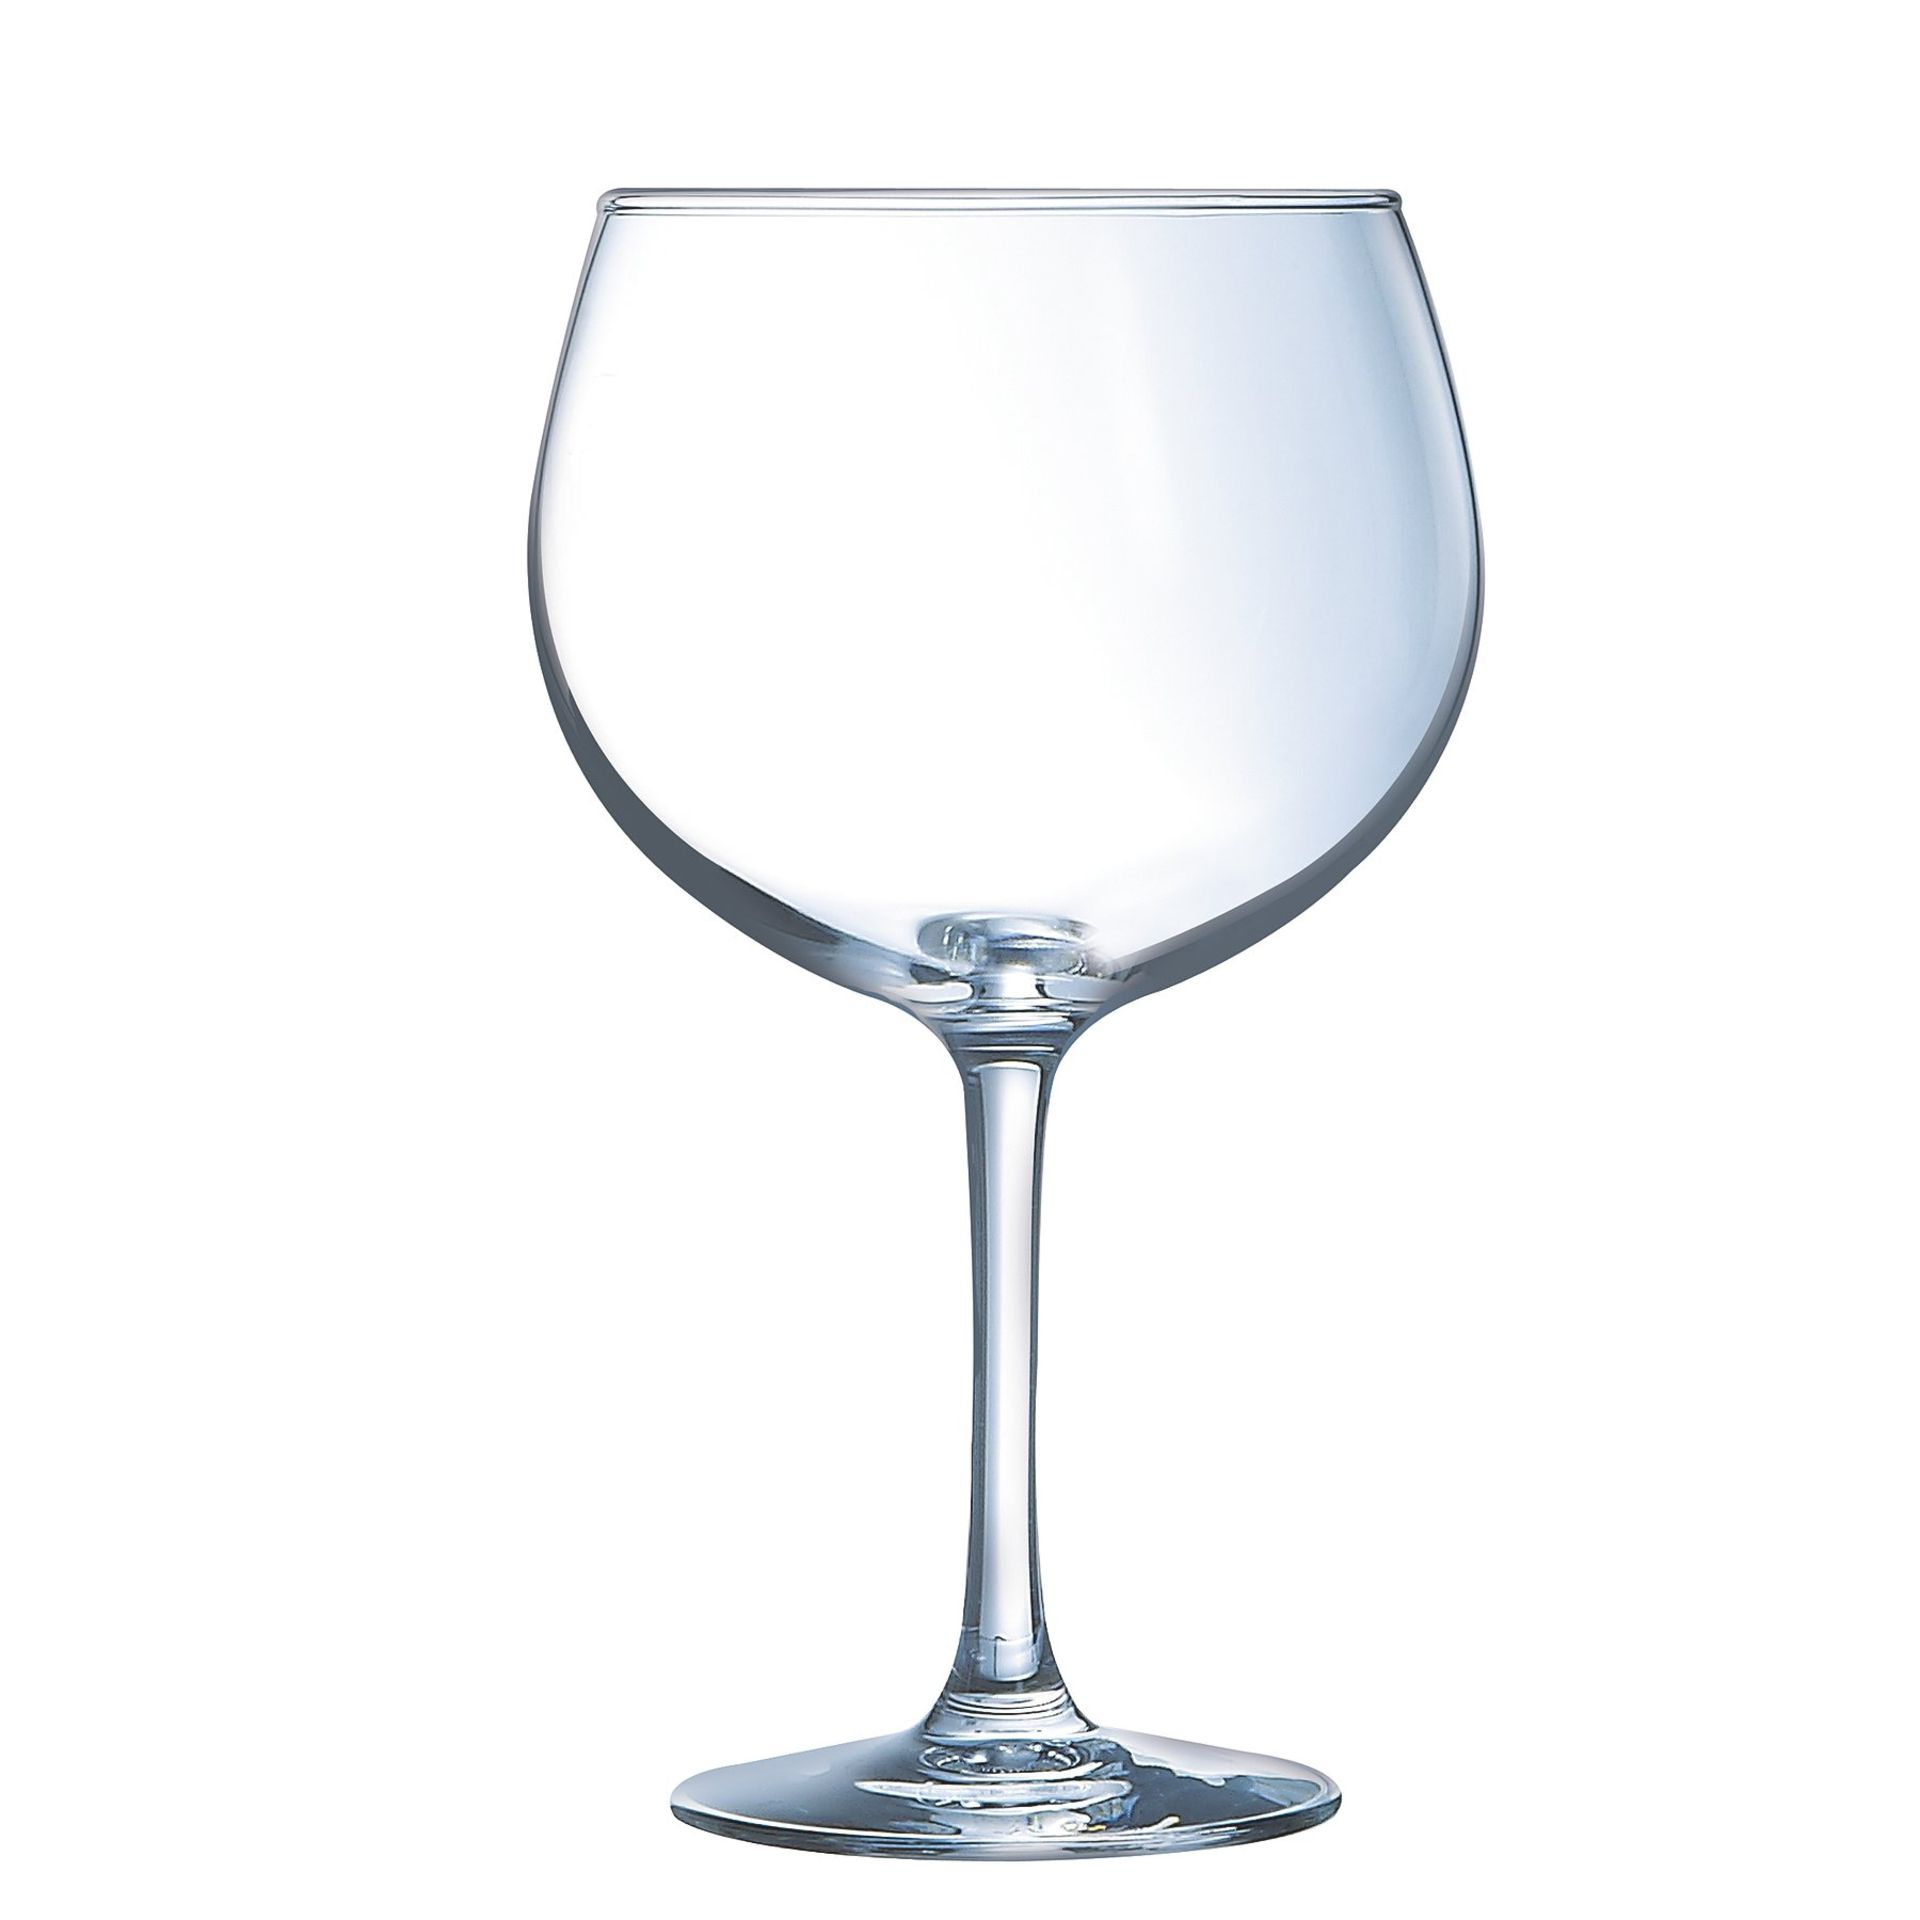 Glass Lot – Approx. 65x Items. To Include 16x Wine Glasses. 3x Large Gin Glasses. 12x Soda Glasses. - Image 3 of 21